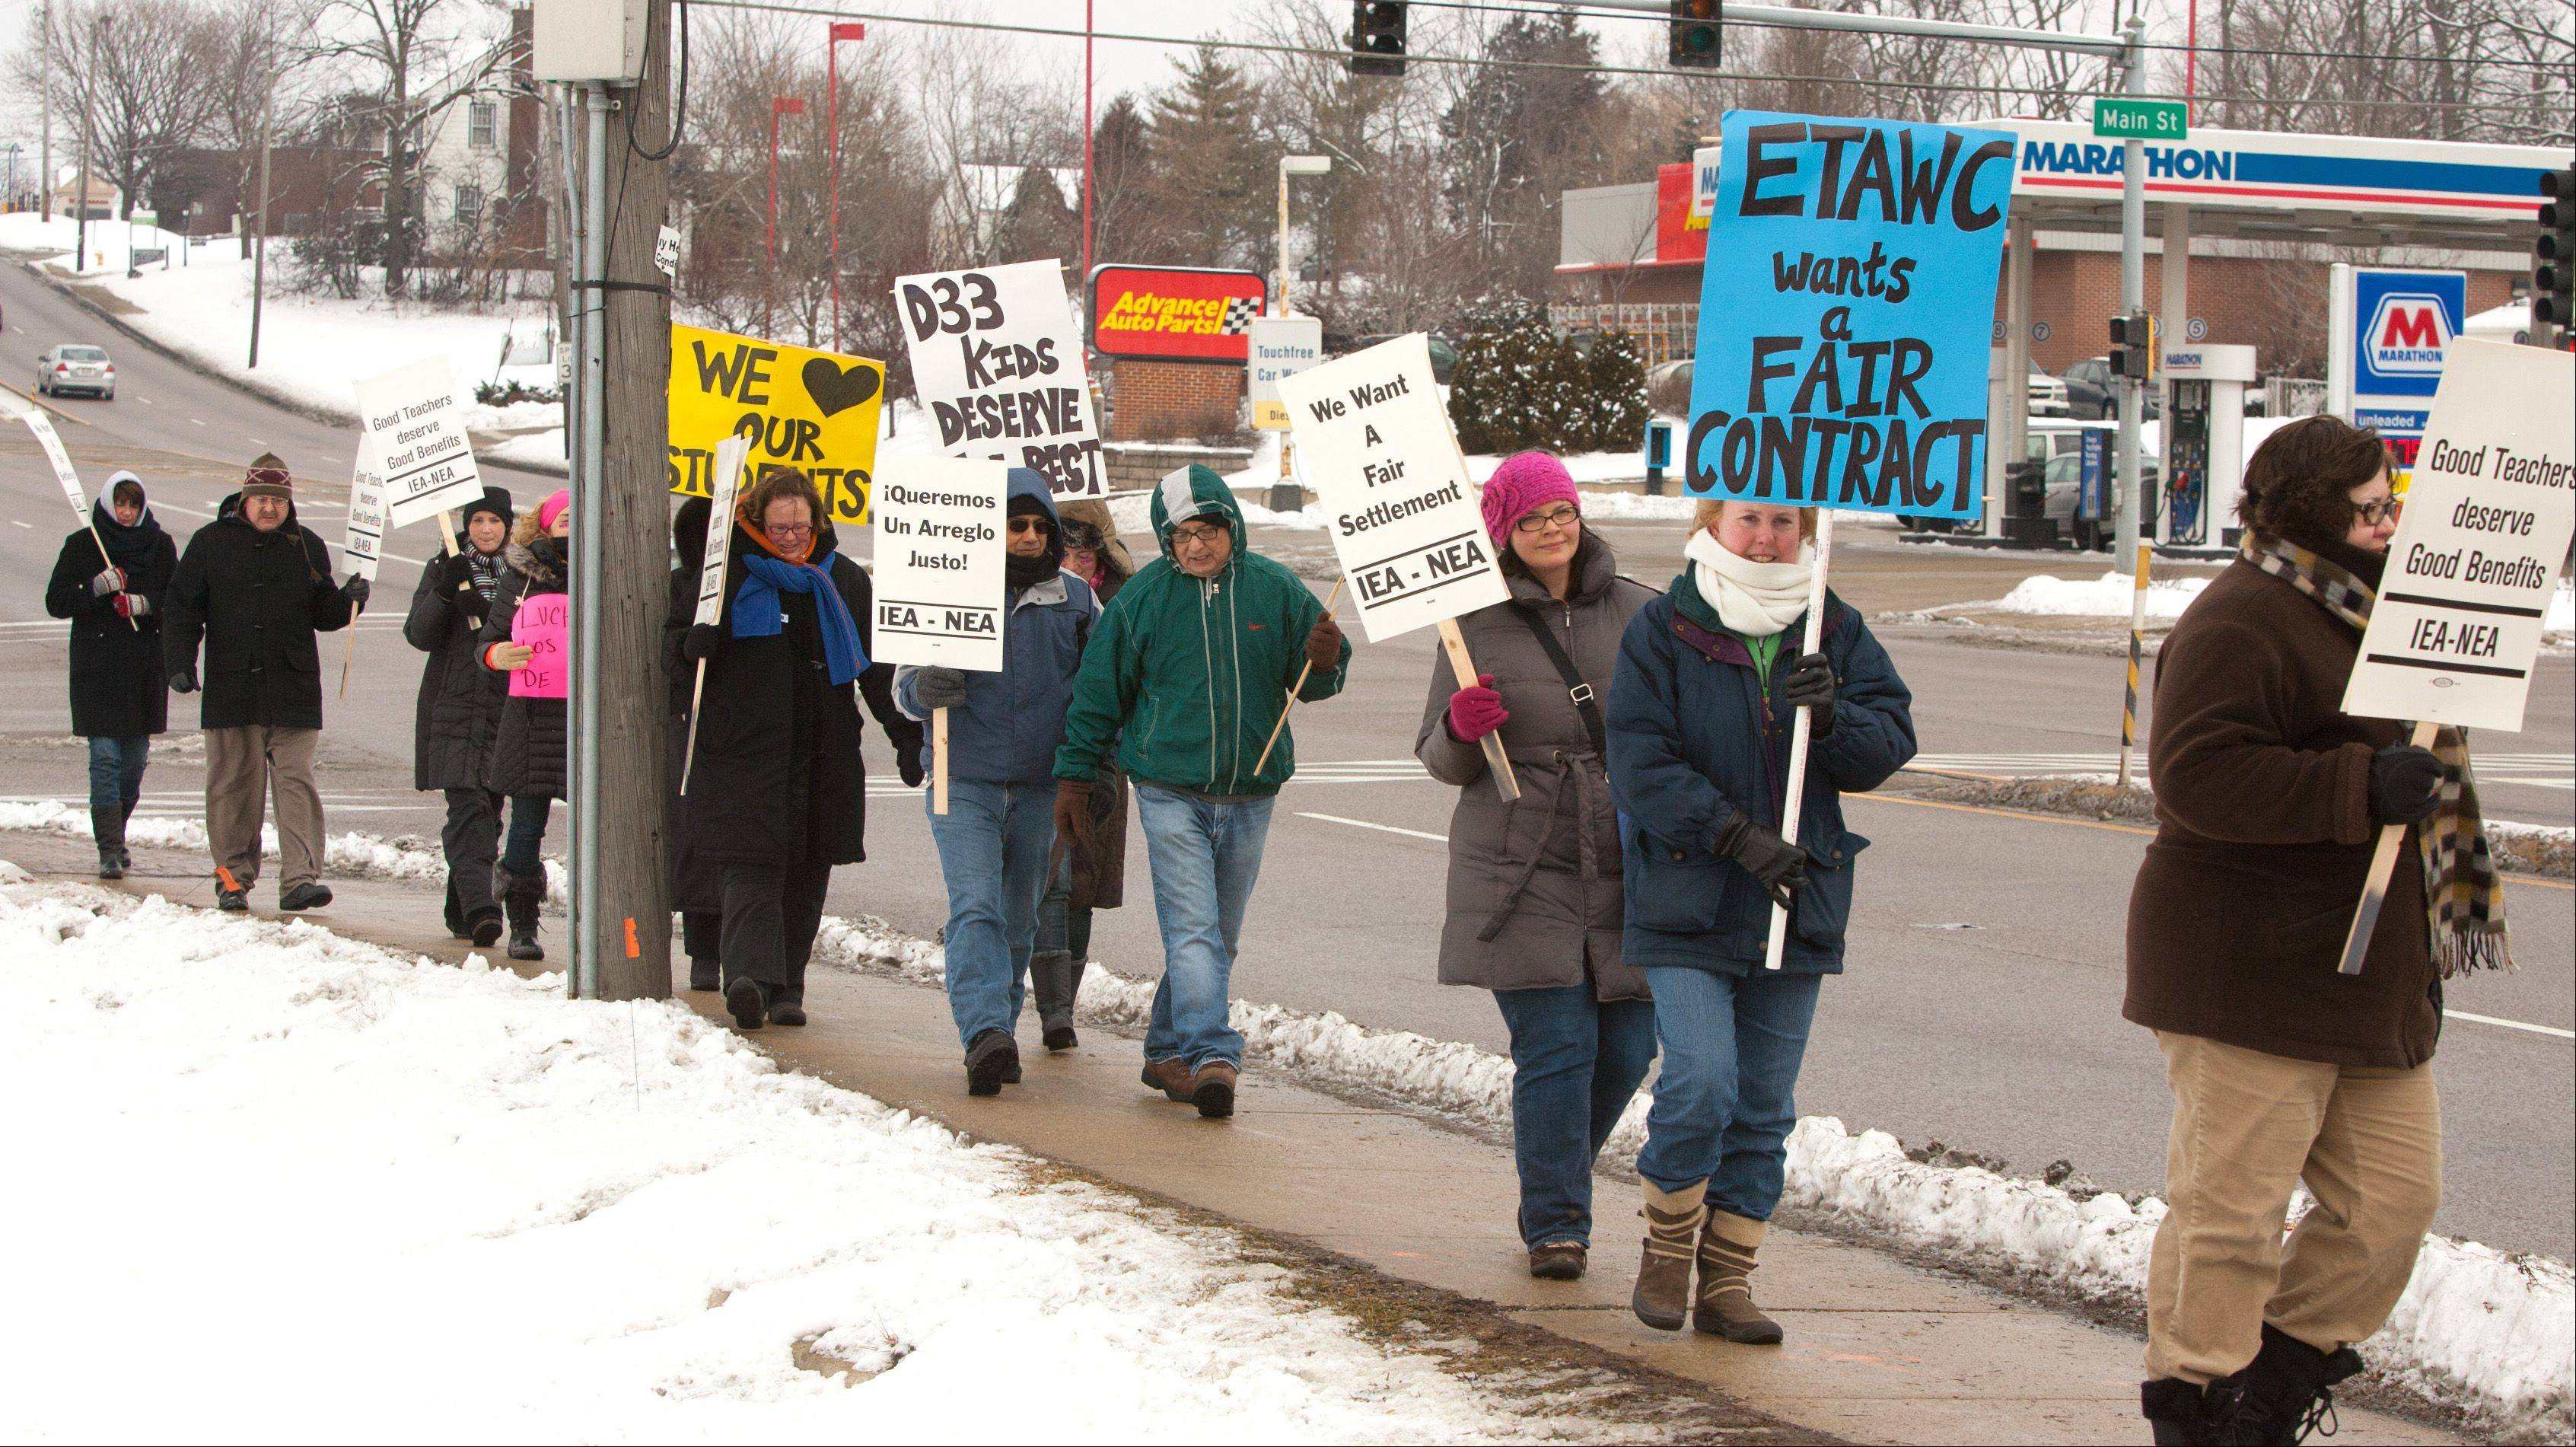 West Chicago Elementary District 33 teachers walk a picket line Tuesday at Route 59 and Main Street.